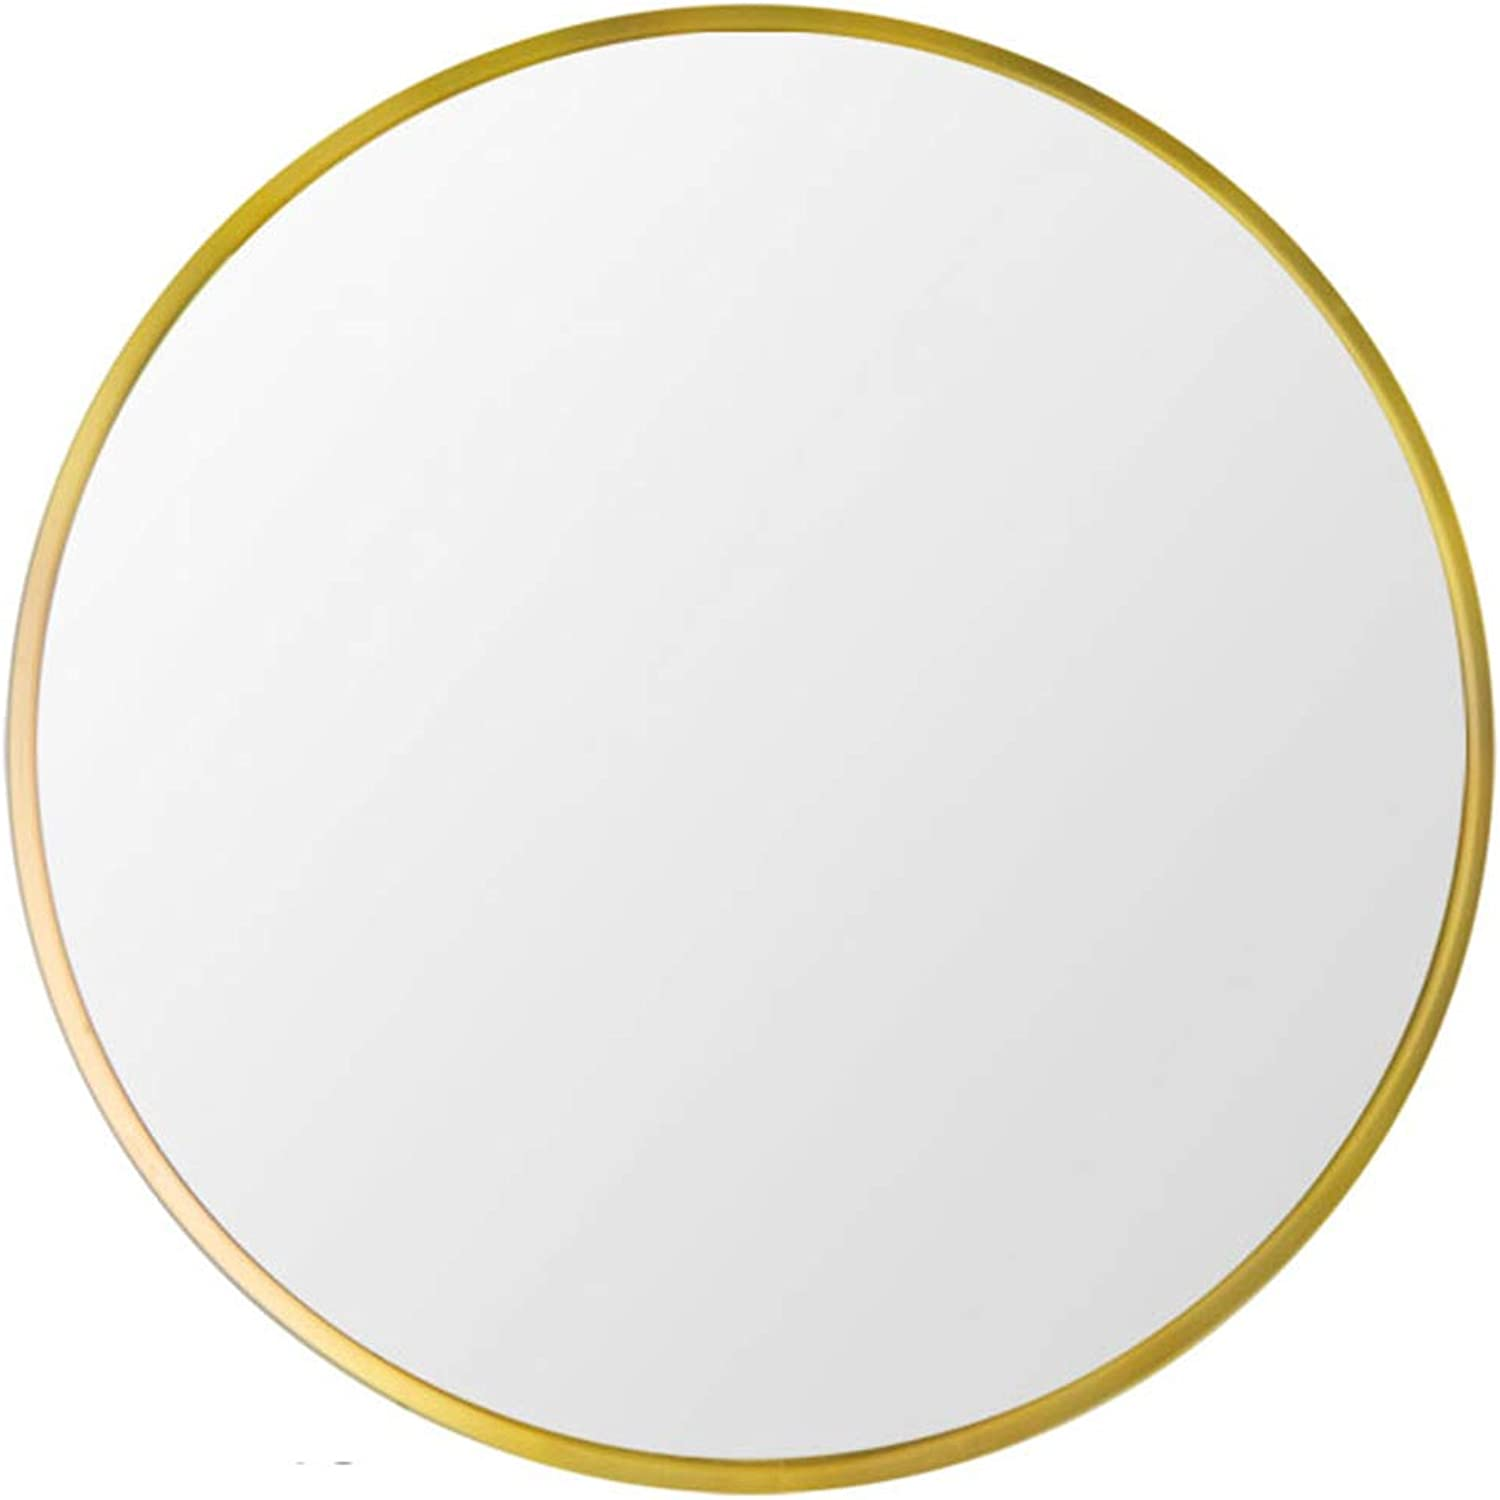 Decorative Mirror for Wall with Metal Frame 40CM Round Vanity Mirror Shave Shower Makeup Mirror for Bathroom Entry Dining Room Living Room and More